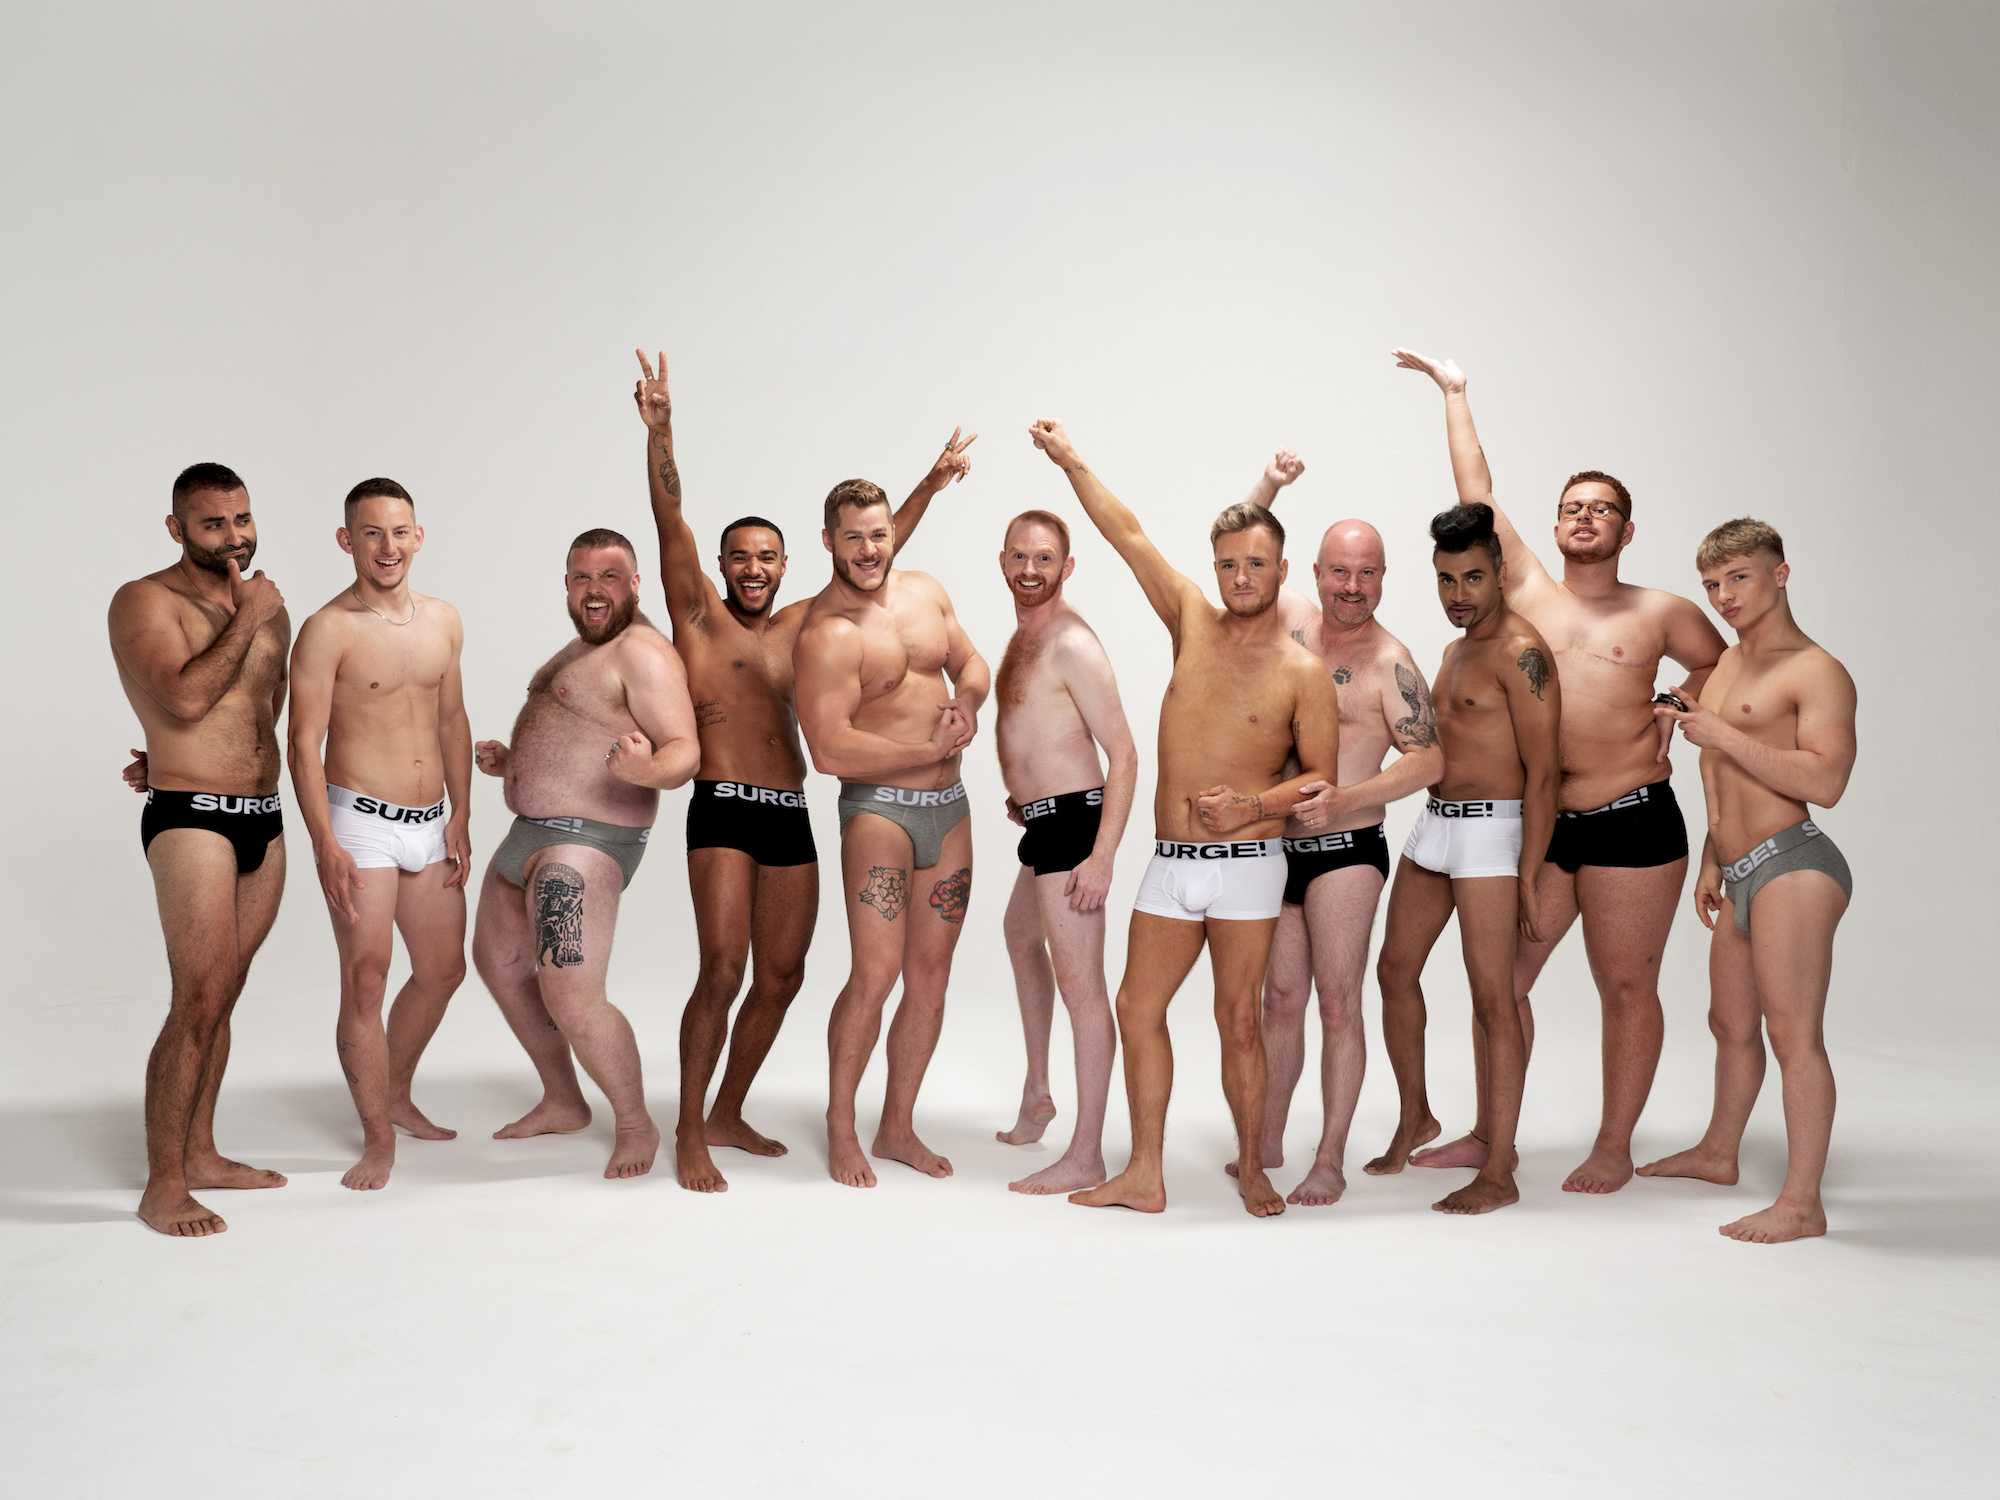 Surge Underwear Embraces Body Diversity